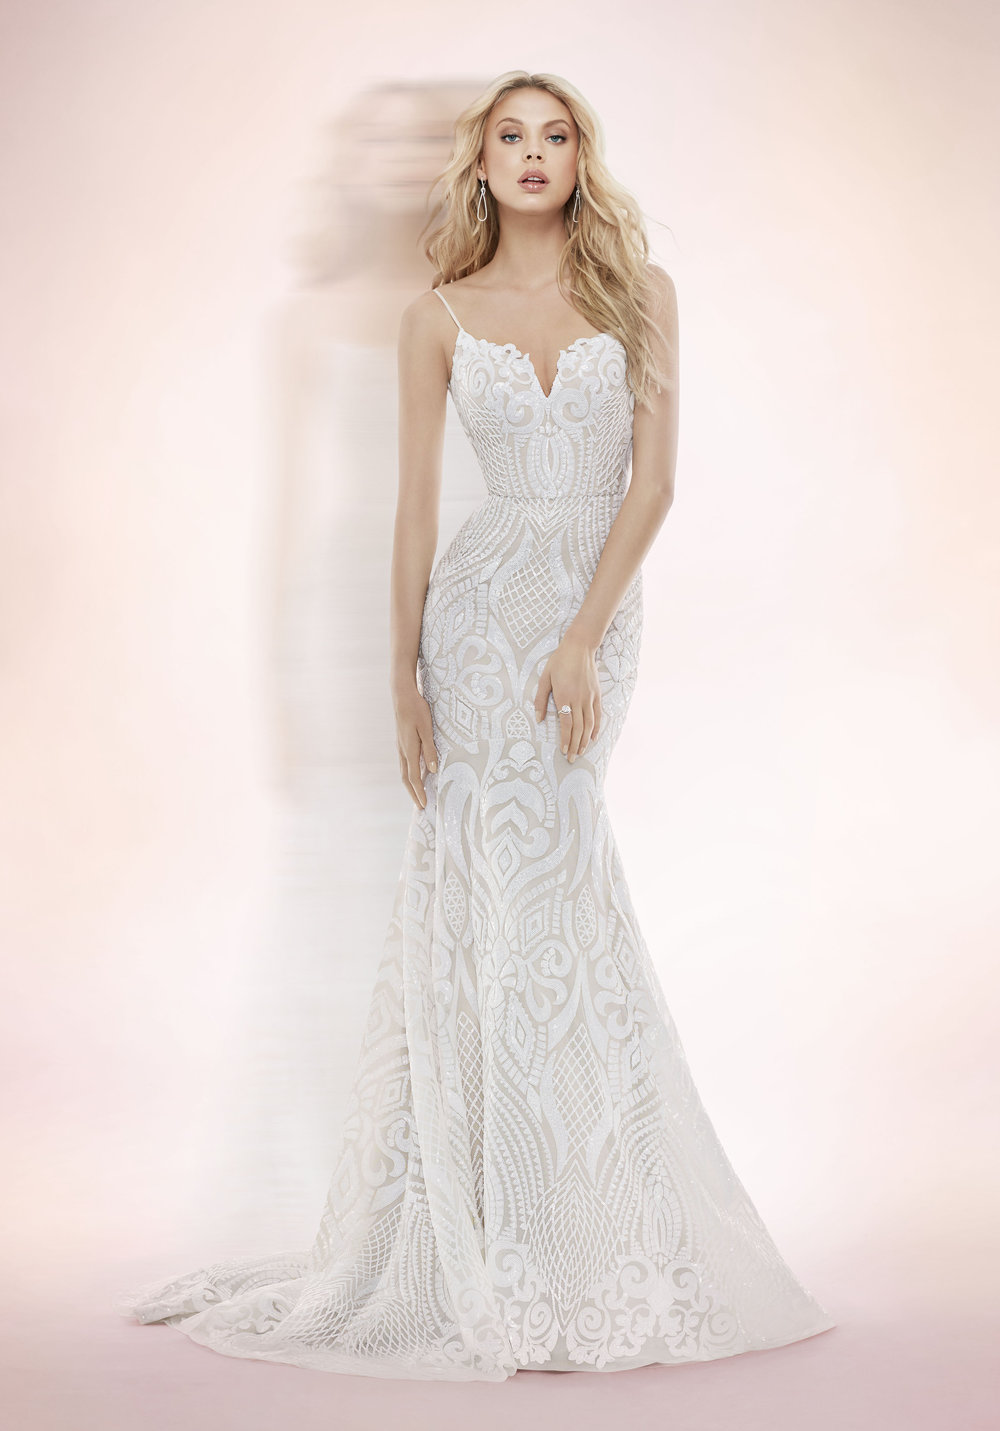 blush-hayley-paige-bridal-spring-2017-style-1710-west_2.jpg